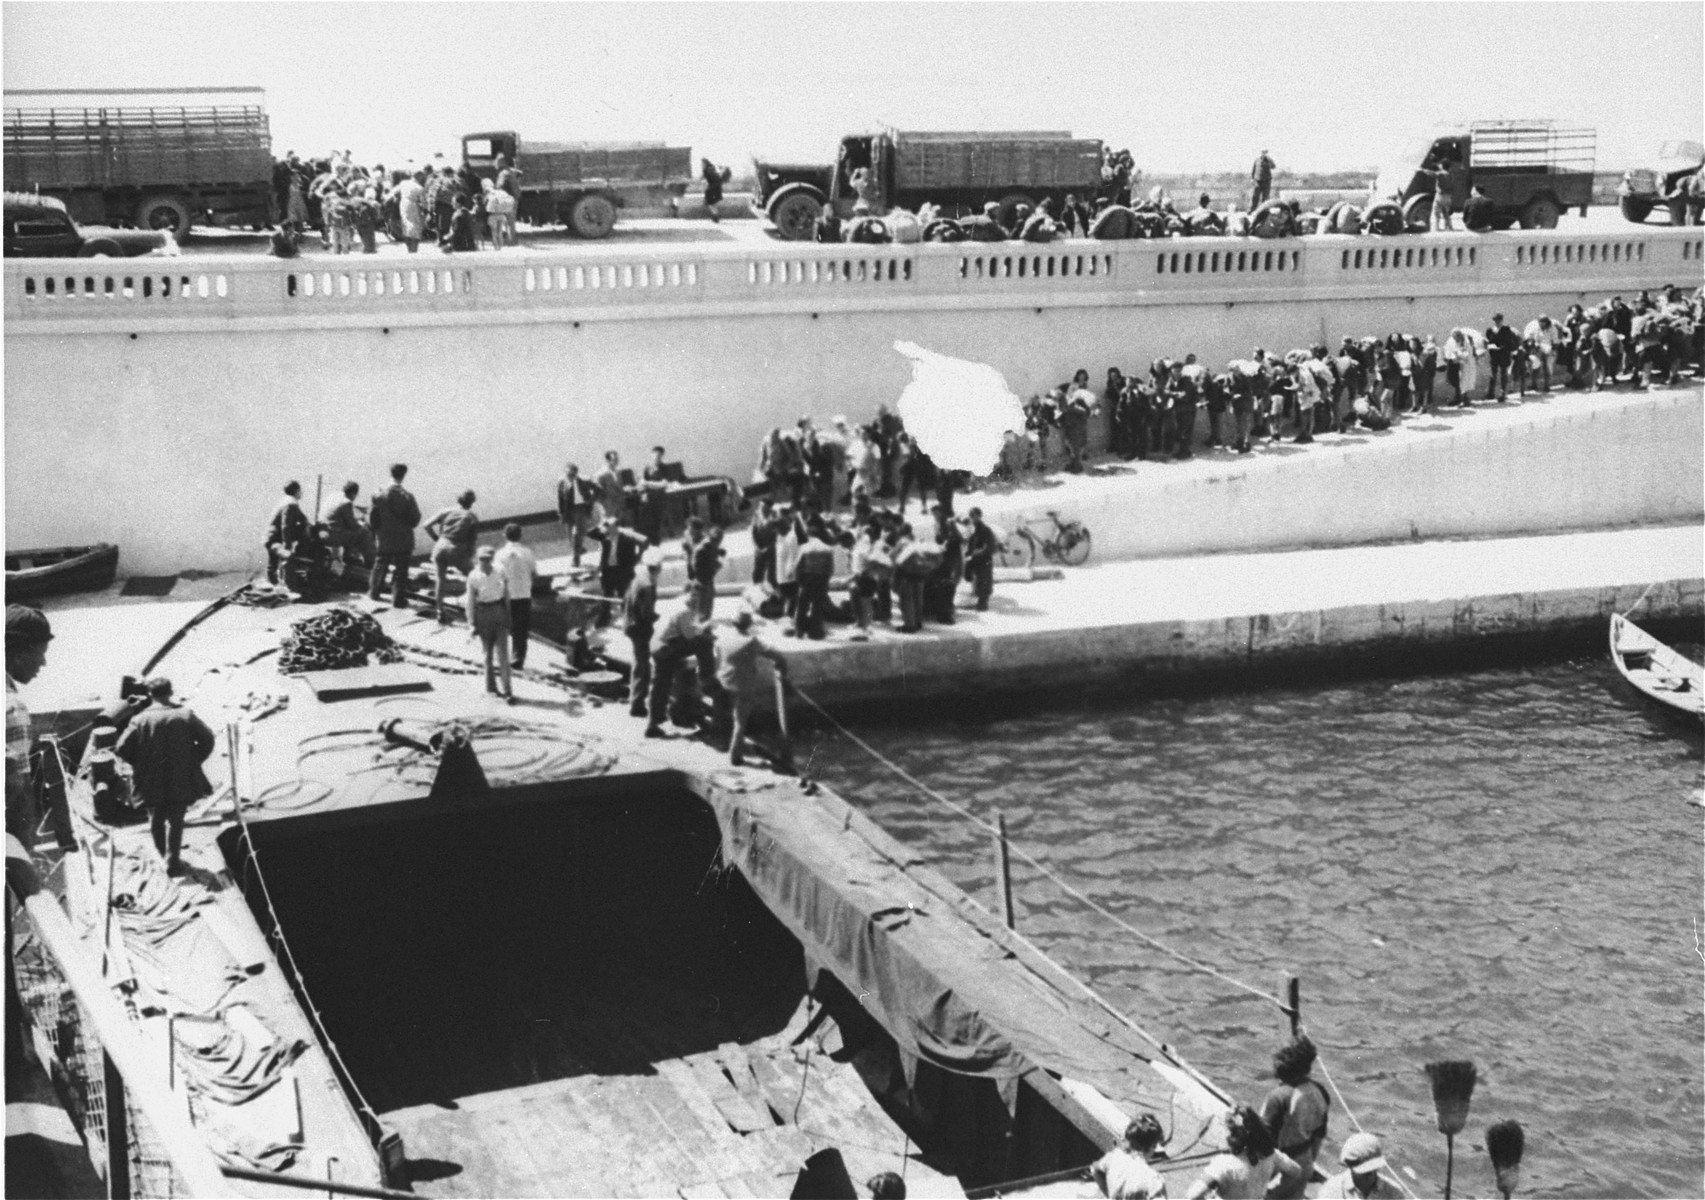 Exodus 1947 refugees make their way along a quay in Sete's harbor toward the President Warfield.